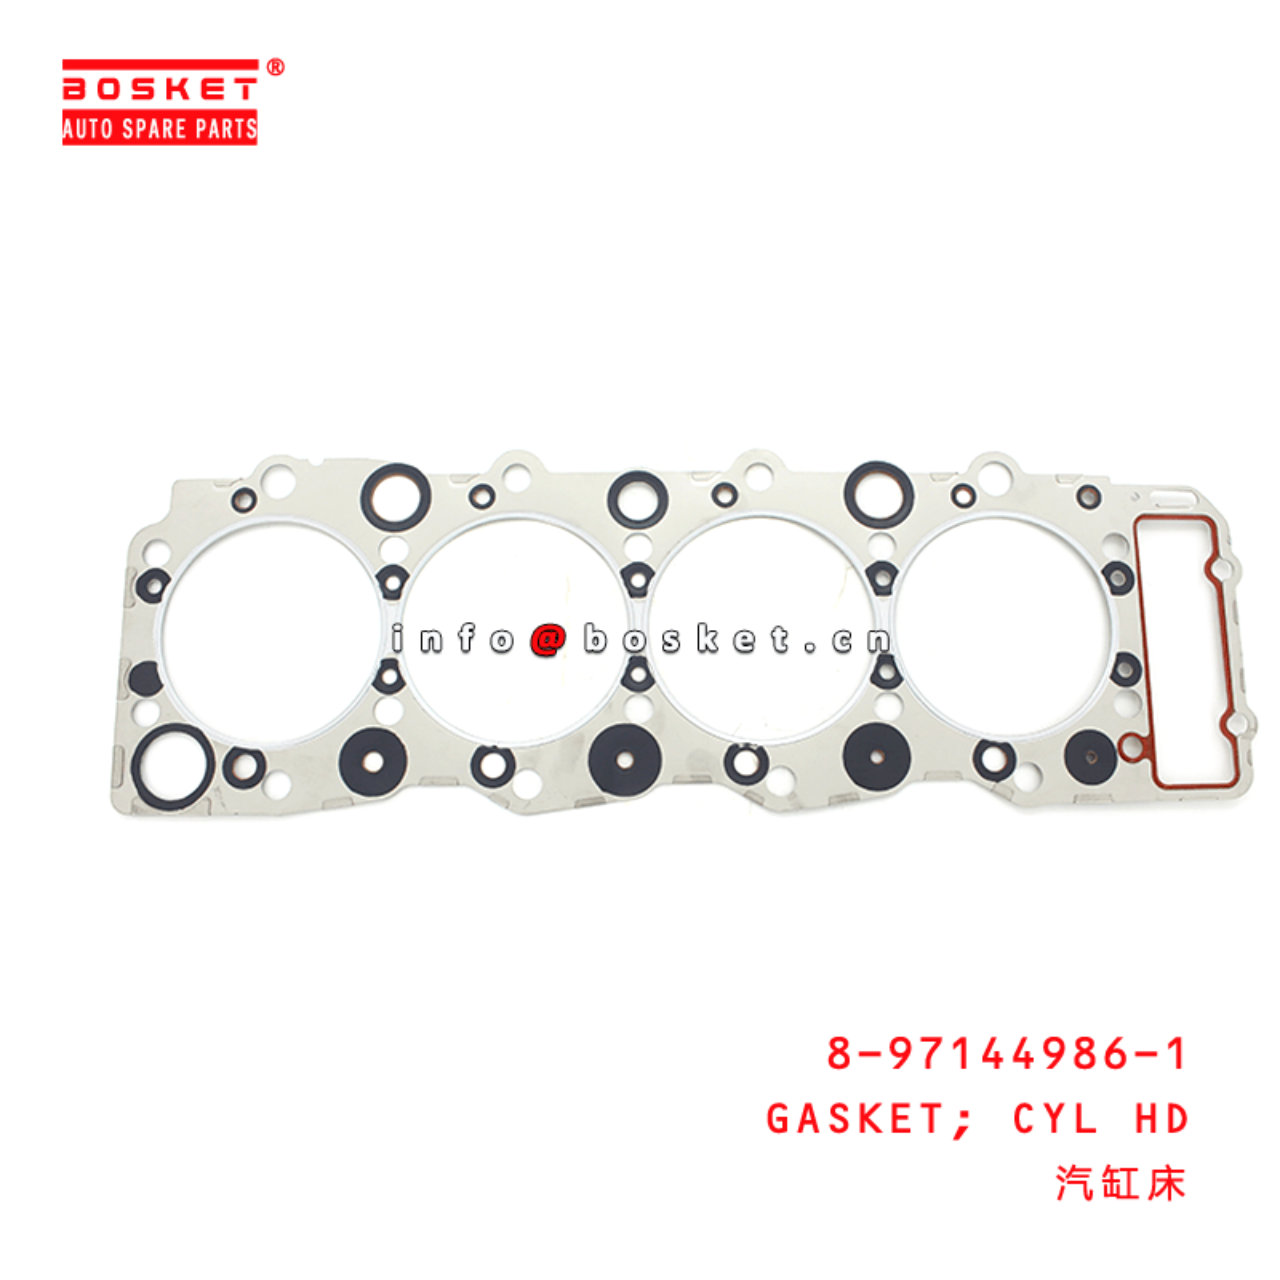 8-97144986-1 Cylinder Head Gasket 8971449861 Suitable for ISUZU NQR71 4HG1